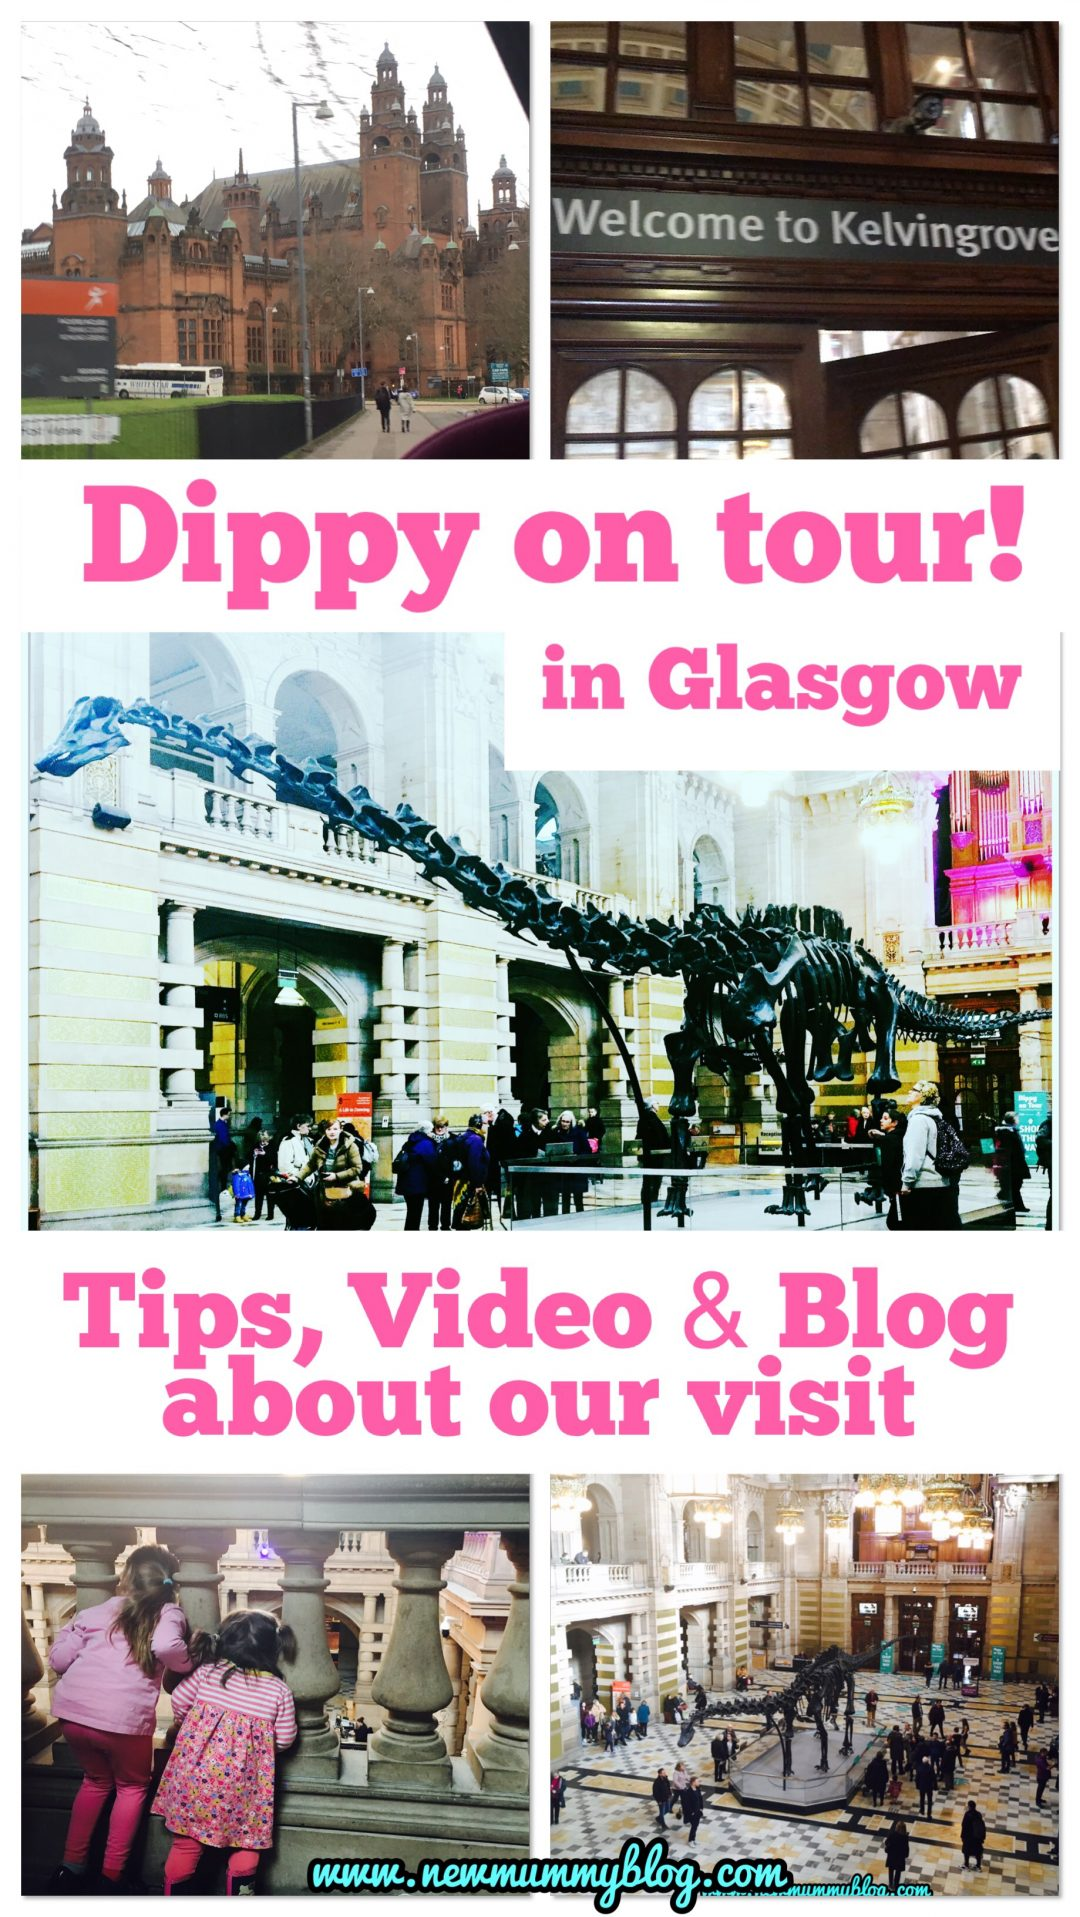 Dippy on tour Glasgow - a day out with the family compilation blog, video, tips to see #dippyontour the diplodocus from Natural History Museum London